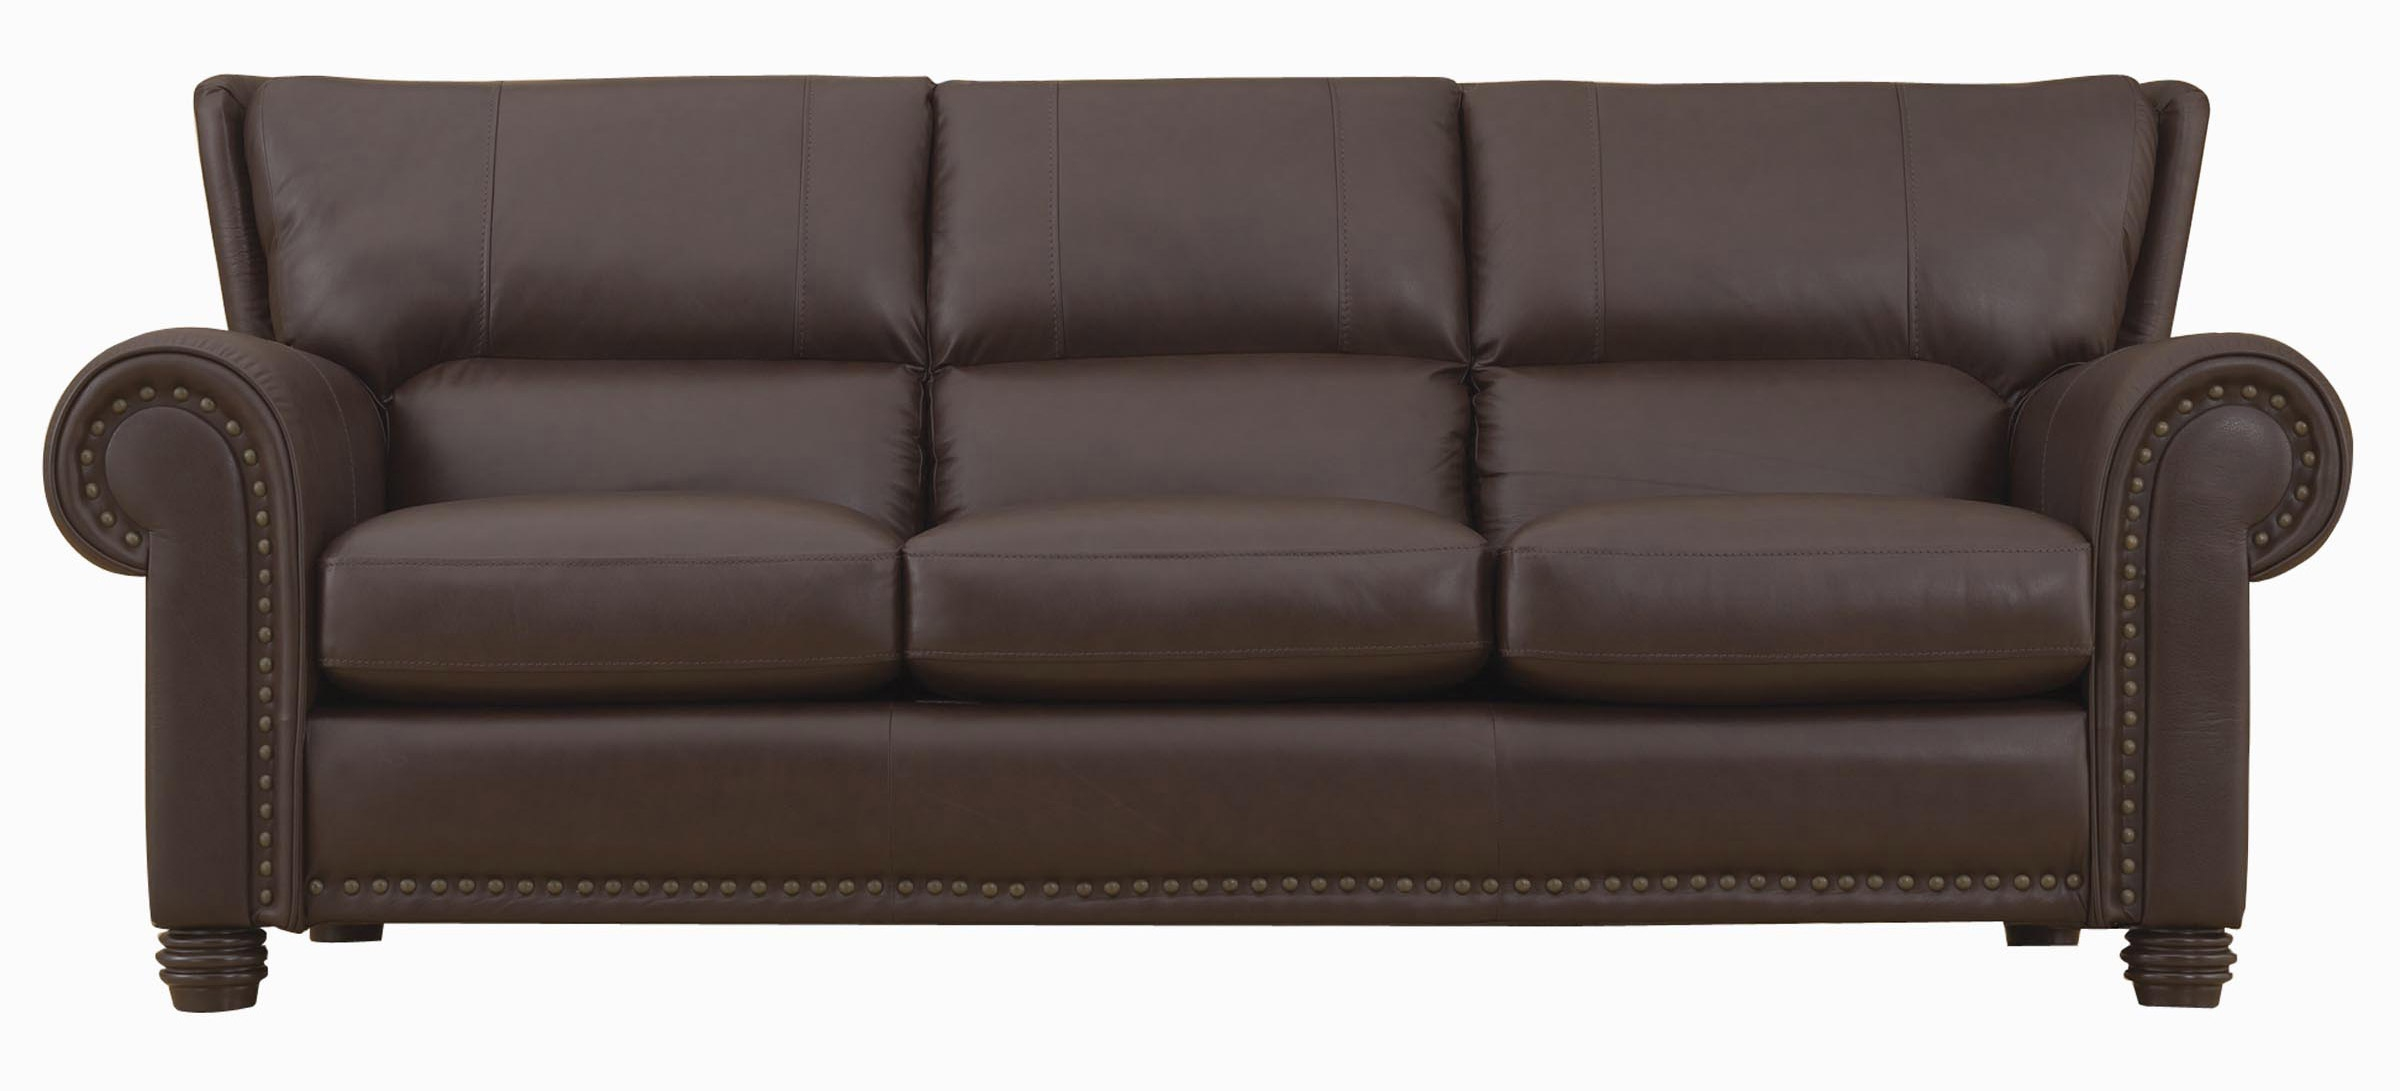 Sofa Windsor Traditional Style Jaymar Collection With Windsor Sofas (Image 7 of 15)